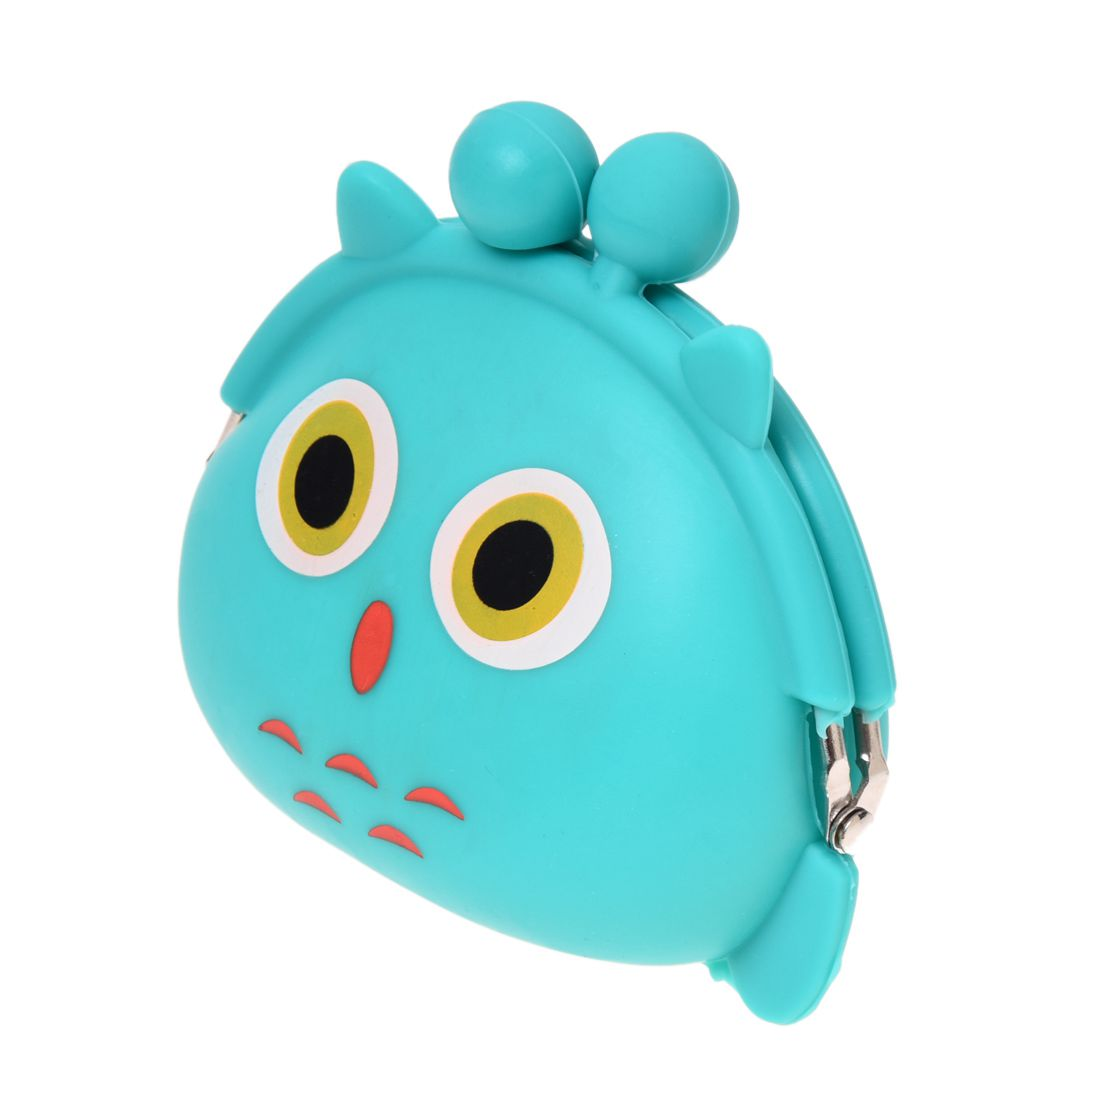 WCS-Women Girls Wallet Kawaii Cute Cartoon Animal Silicone Jelly Coin Bag Purse Kids Gift Owl